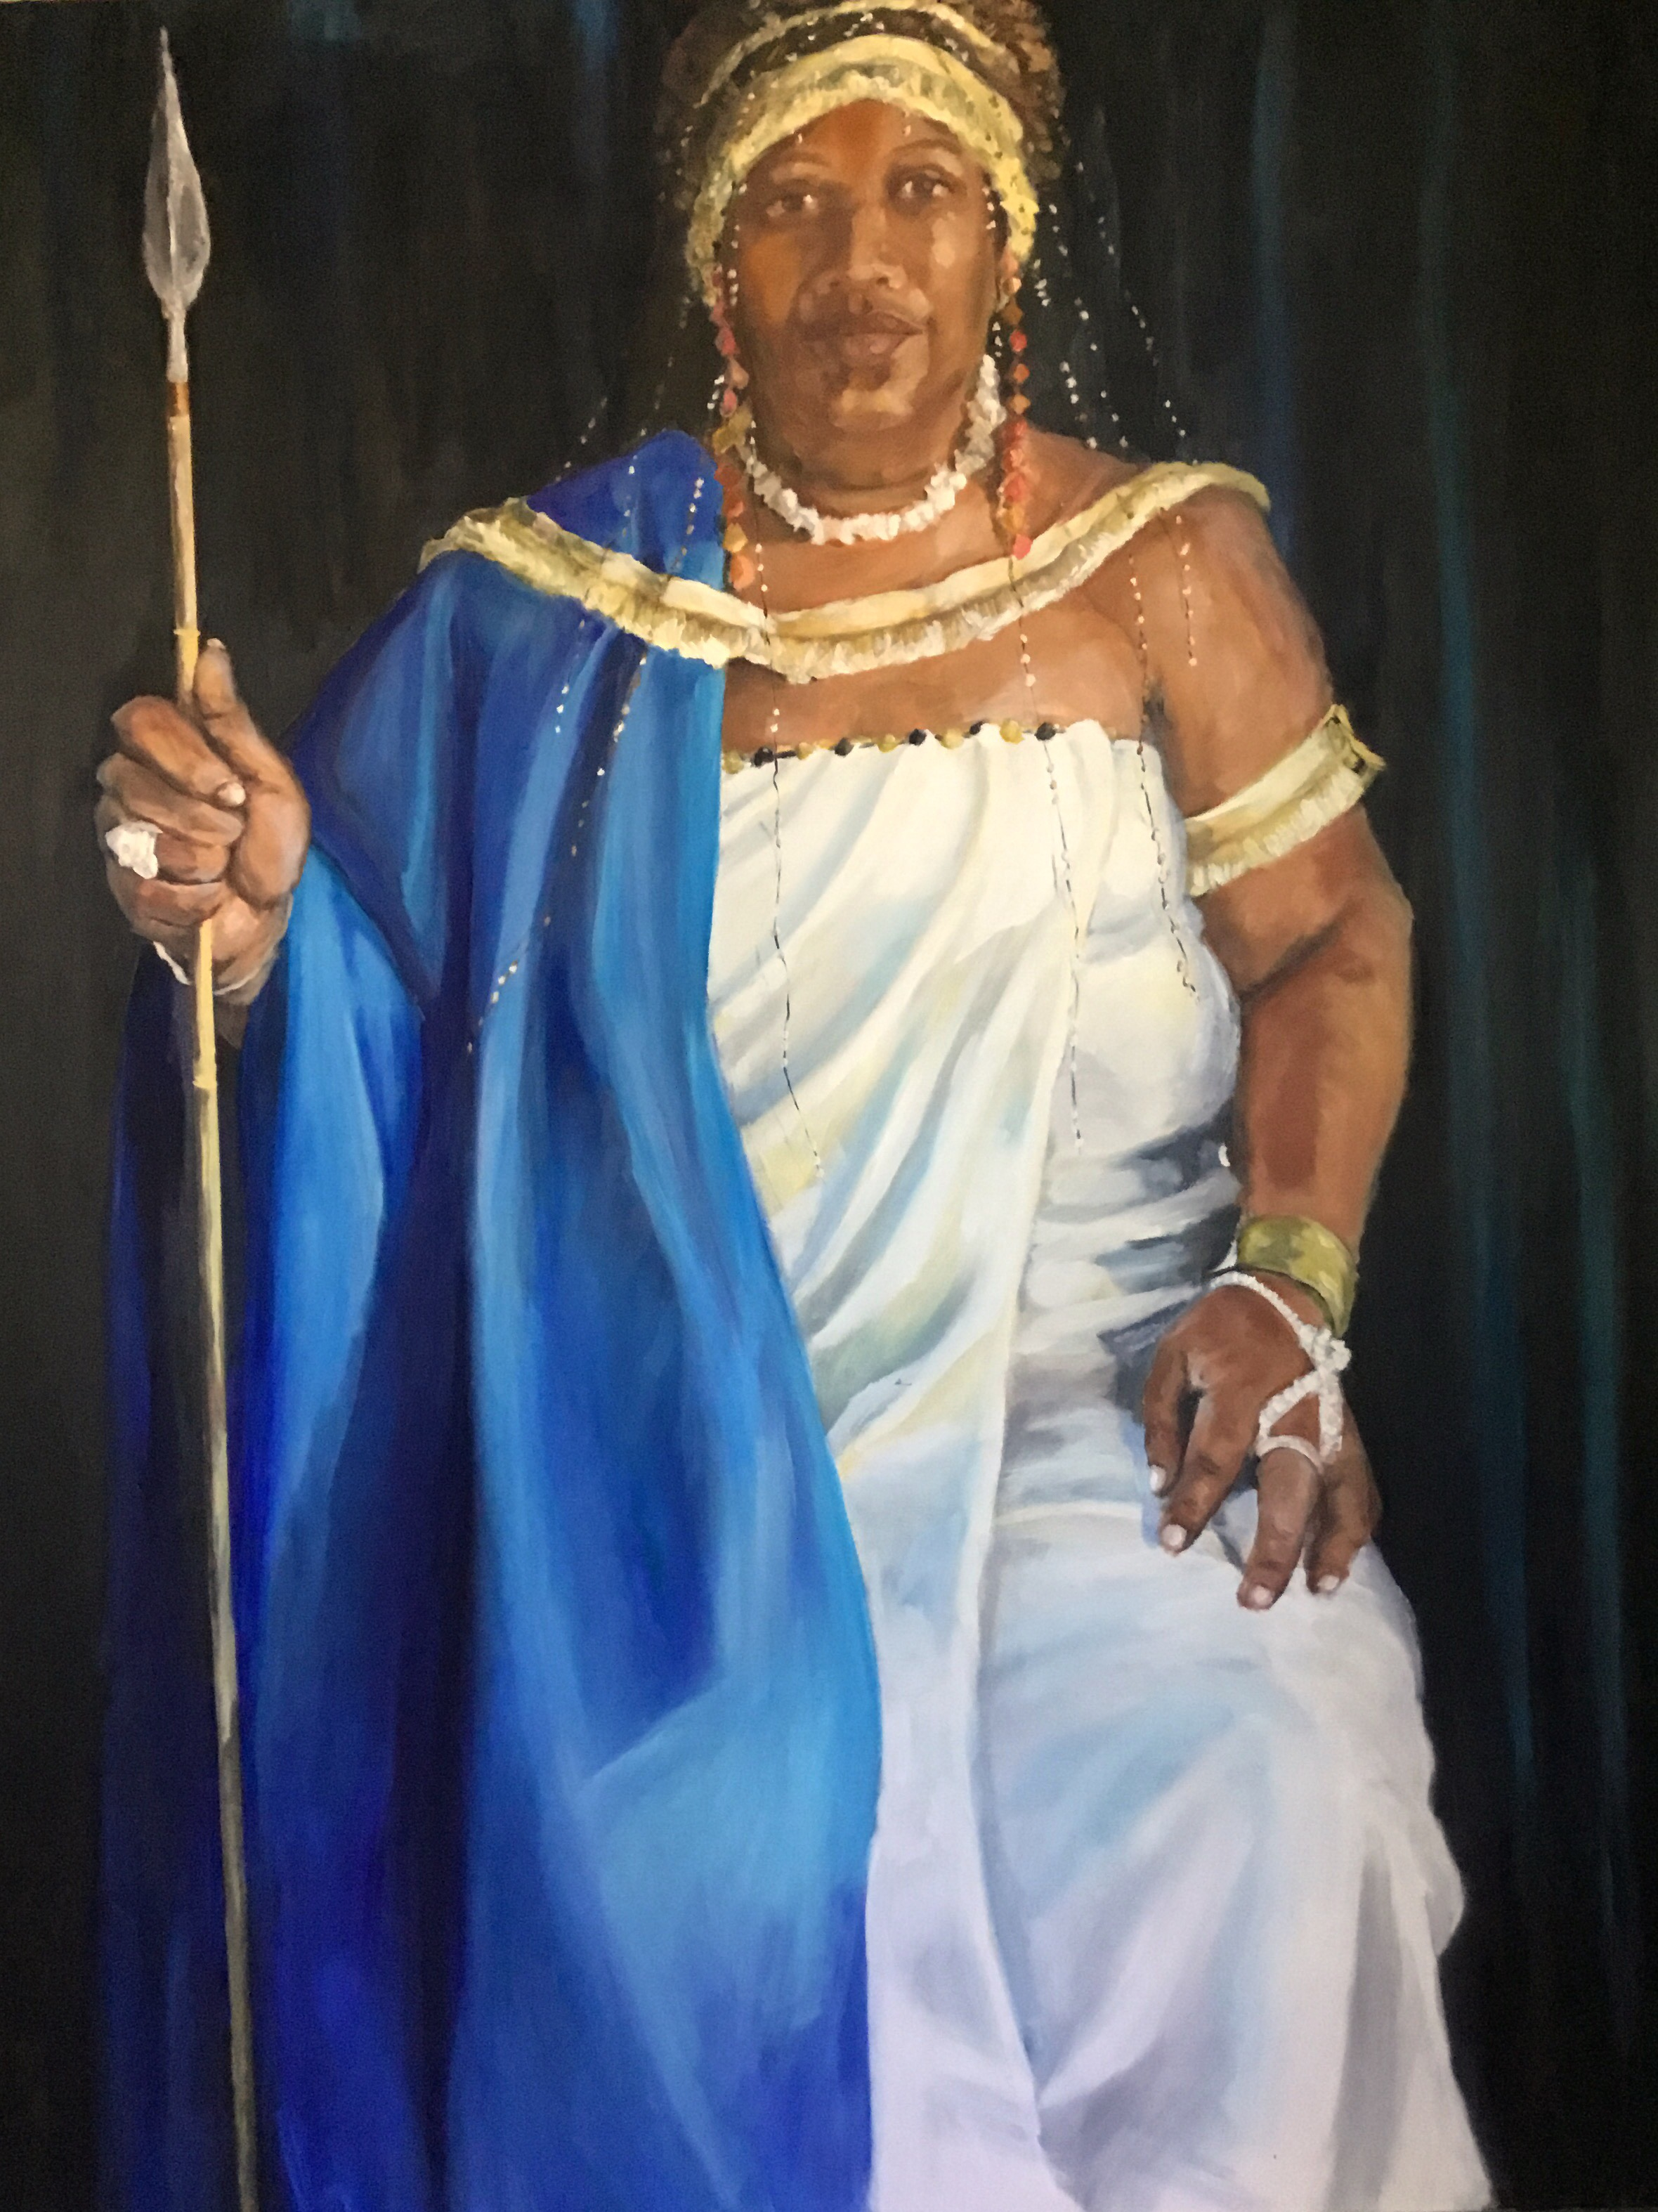 Cynthia as Queen of Ethopia (332 BC)